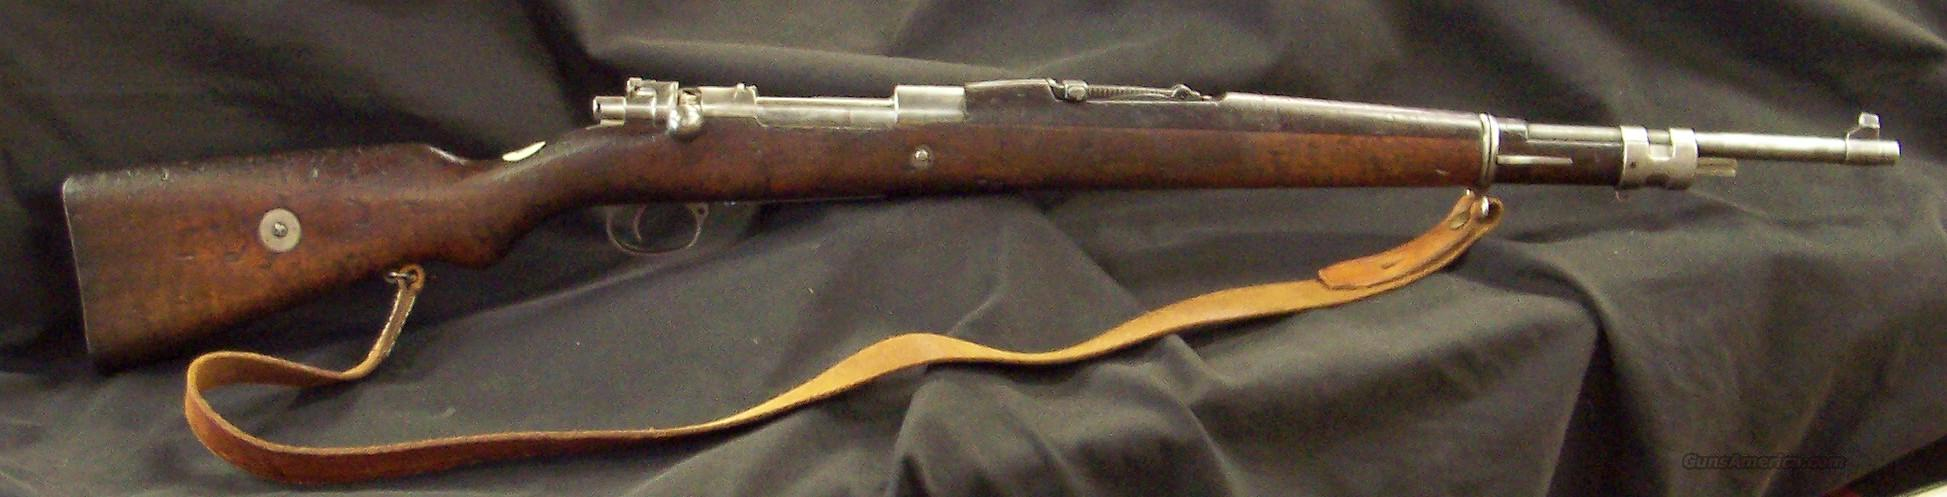 Chilian Steyr Mauser 1912-61  Guns > Rifles > Mauser Rifles > German